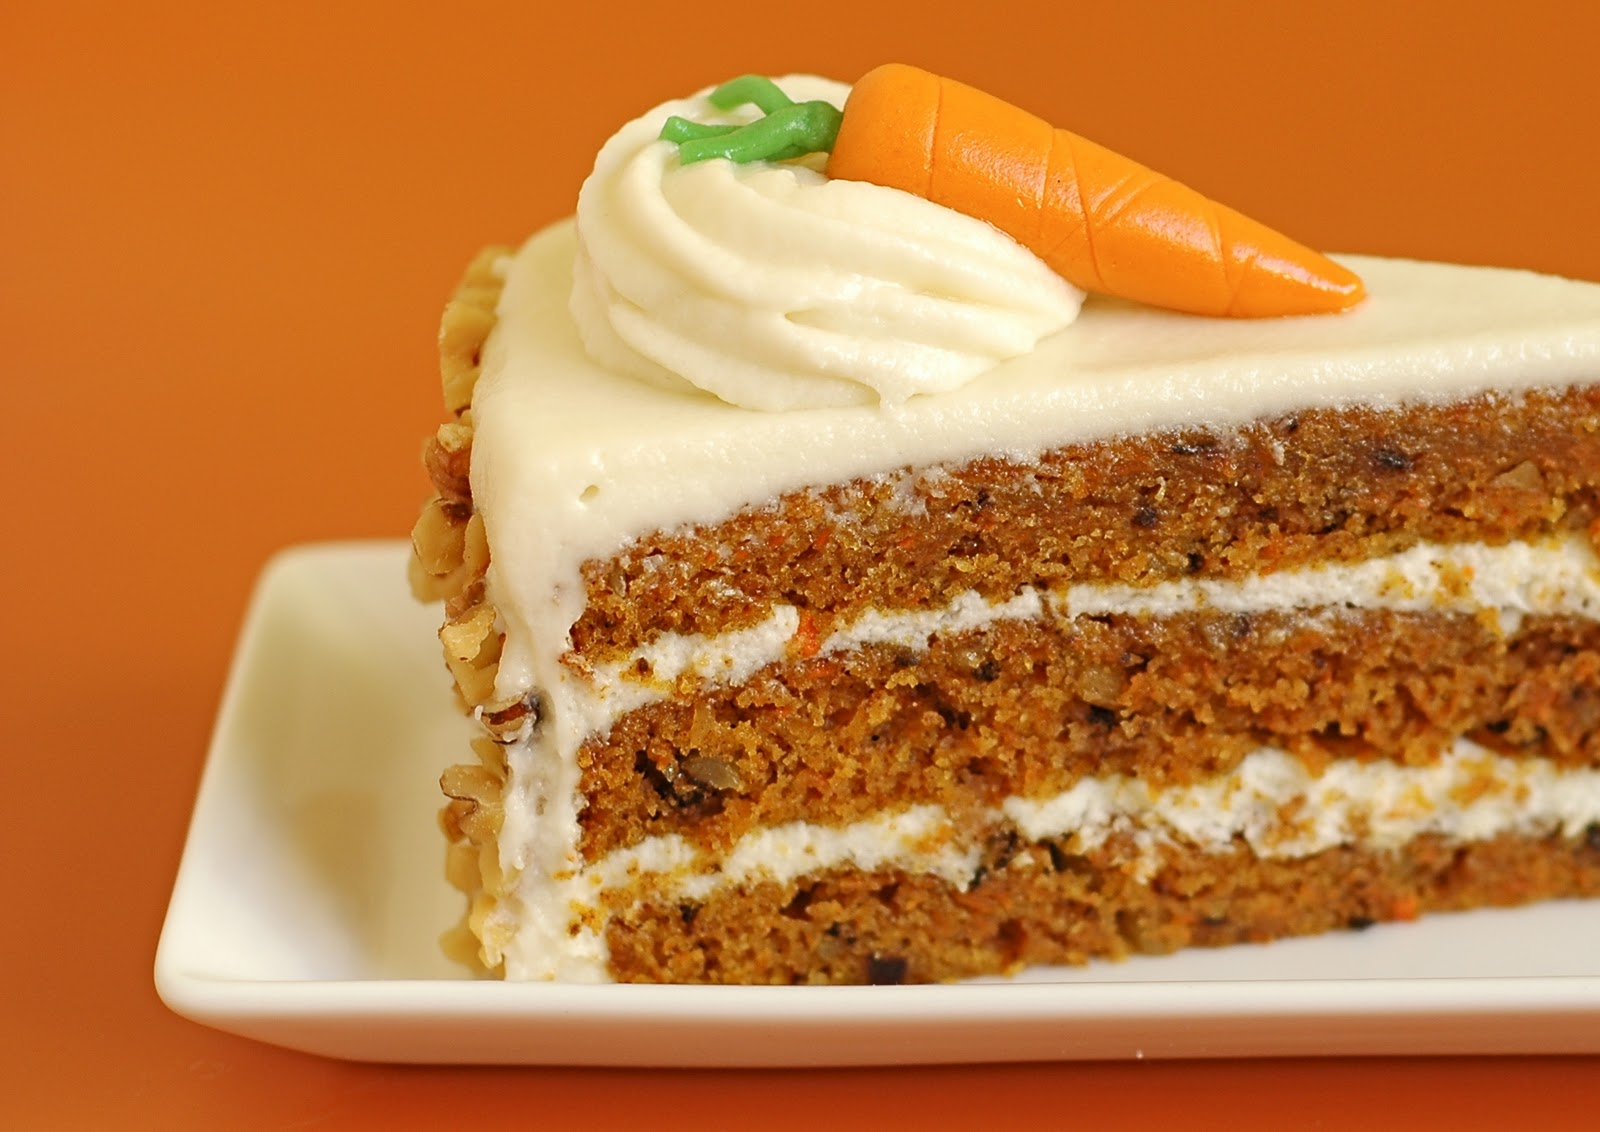 Icing Carrot Cake Glazed Carrots